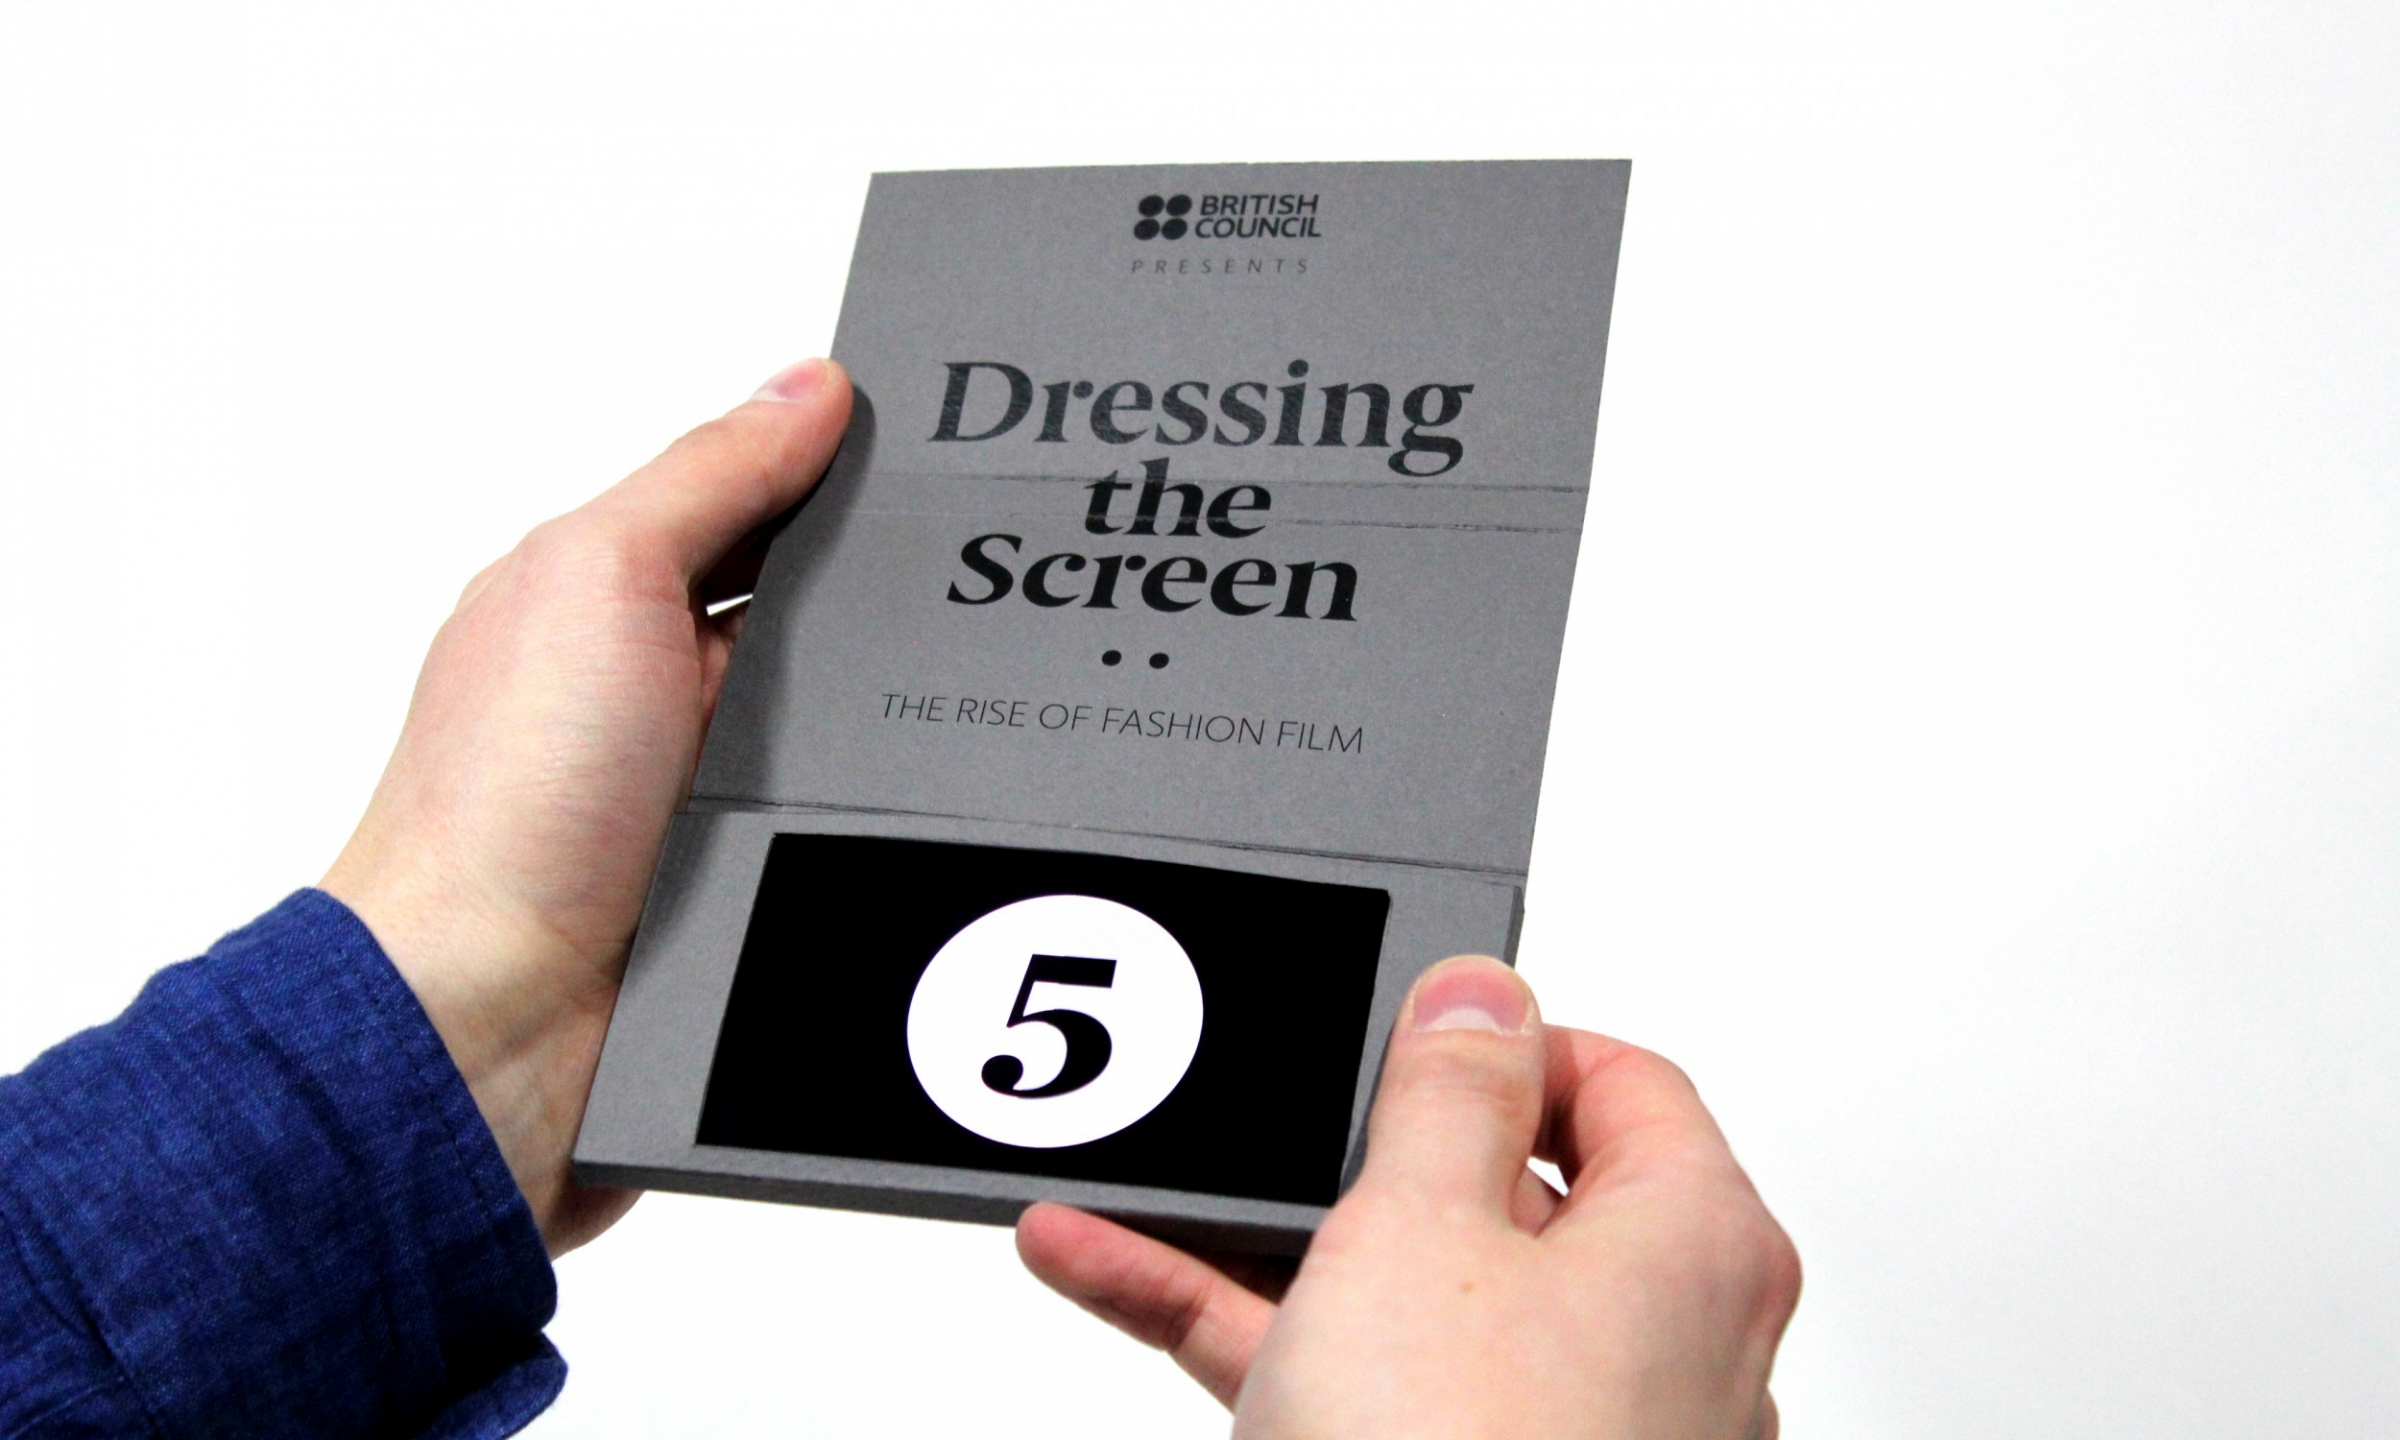 Dressing the Screen: The Rise of Fashion Film